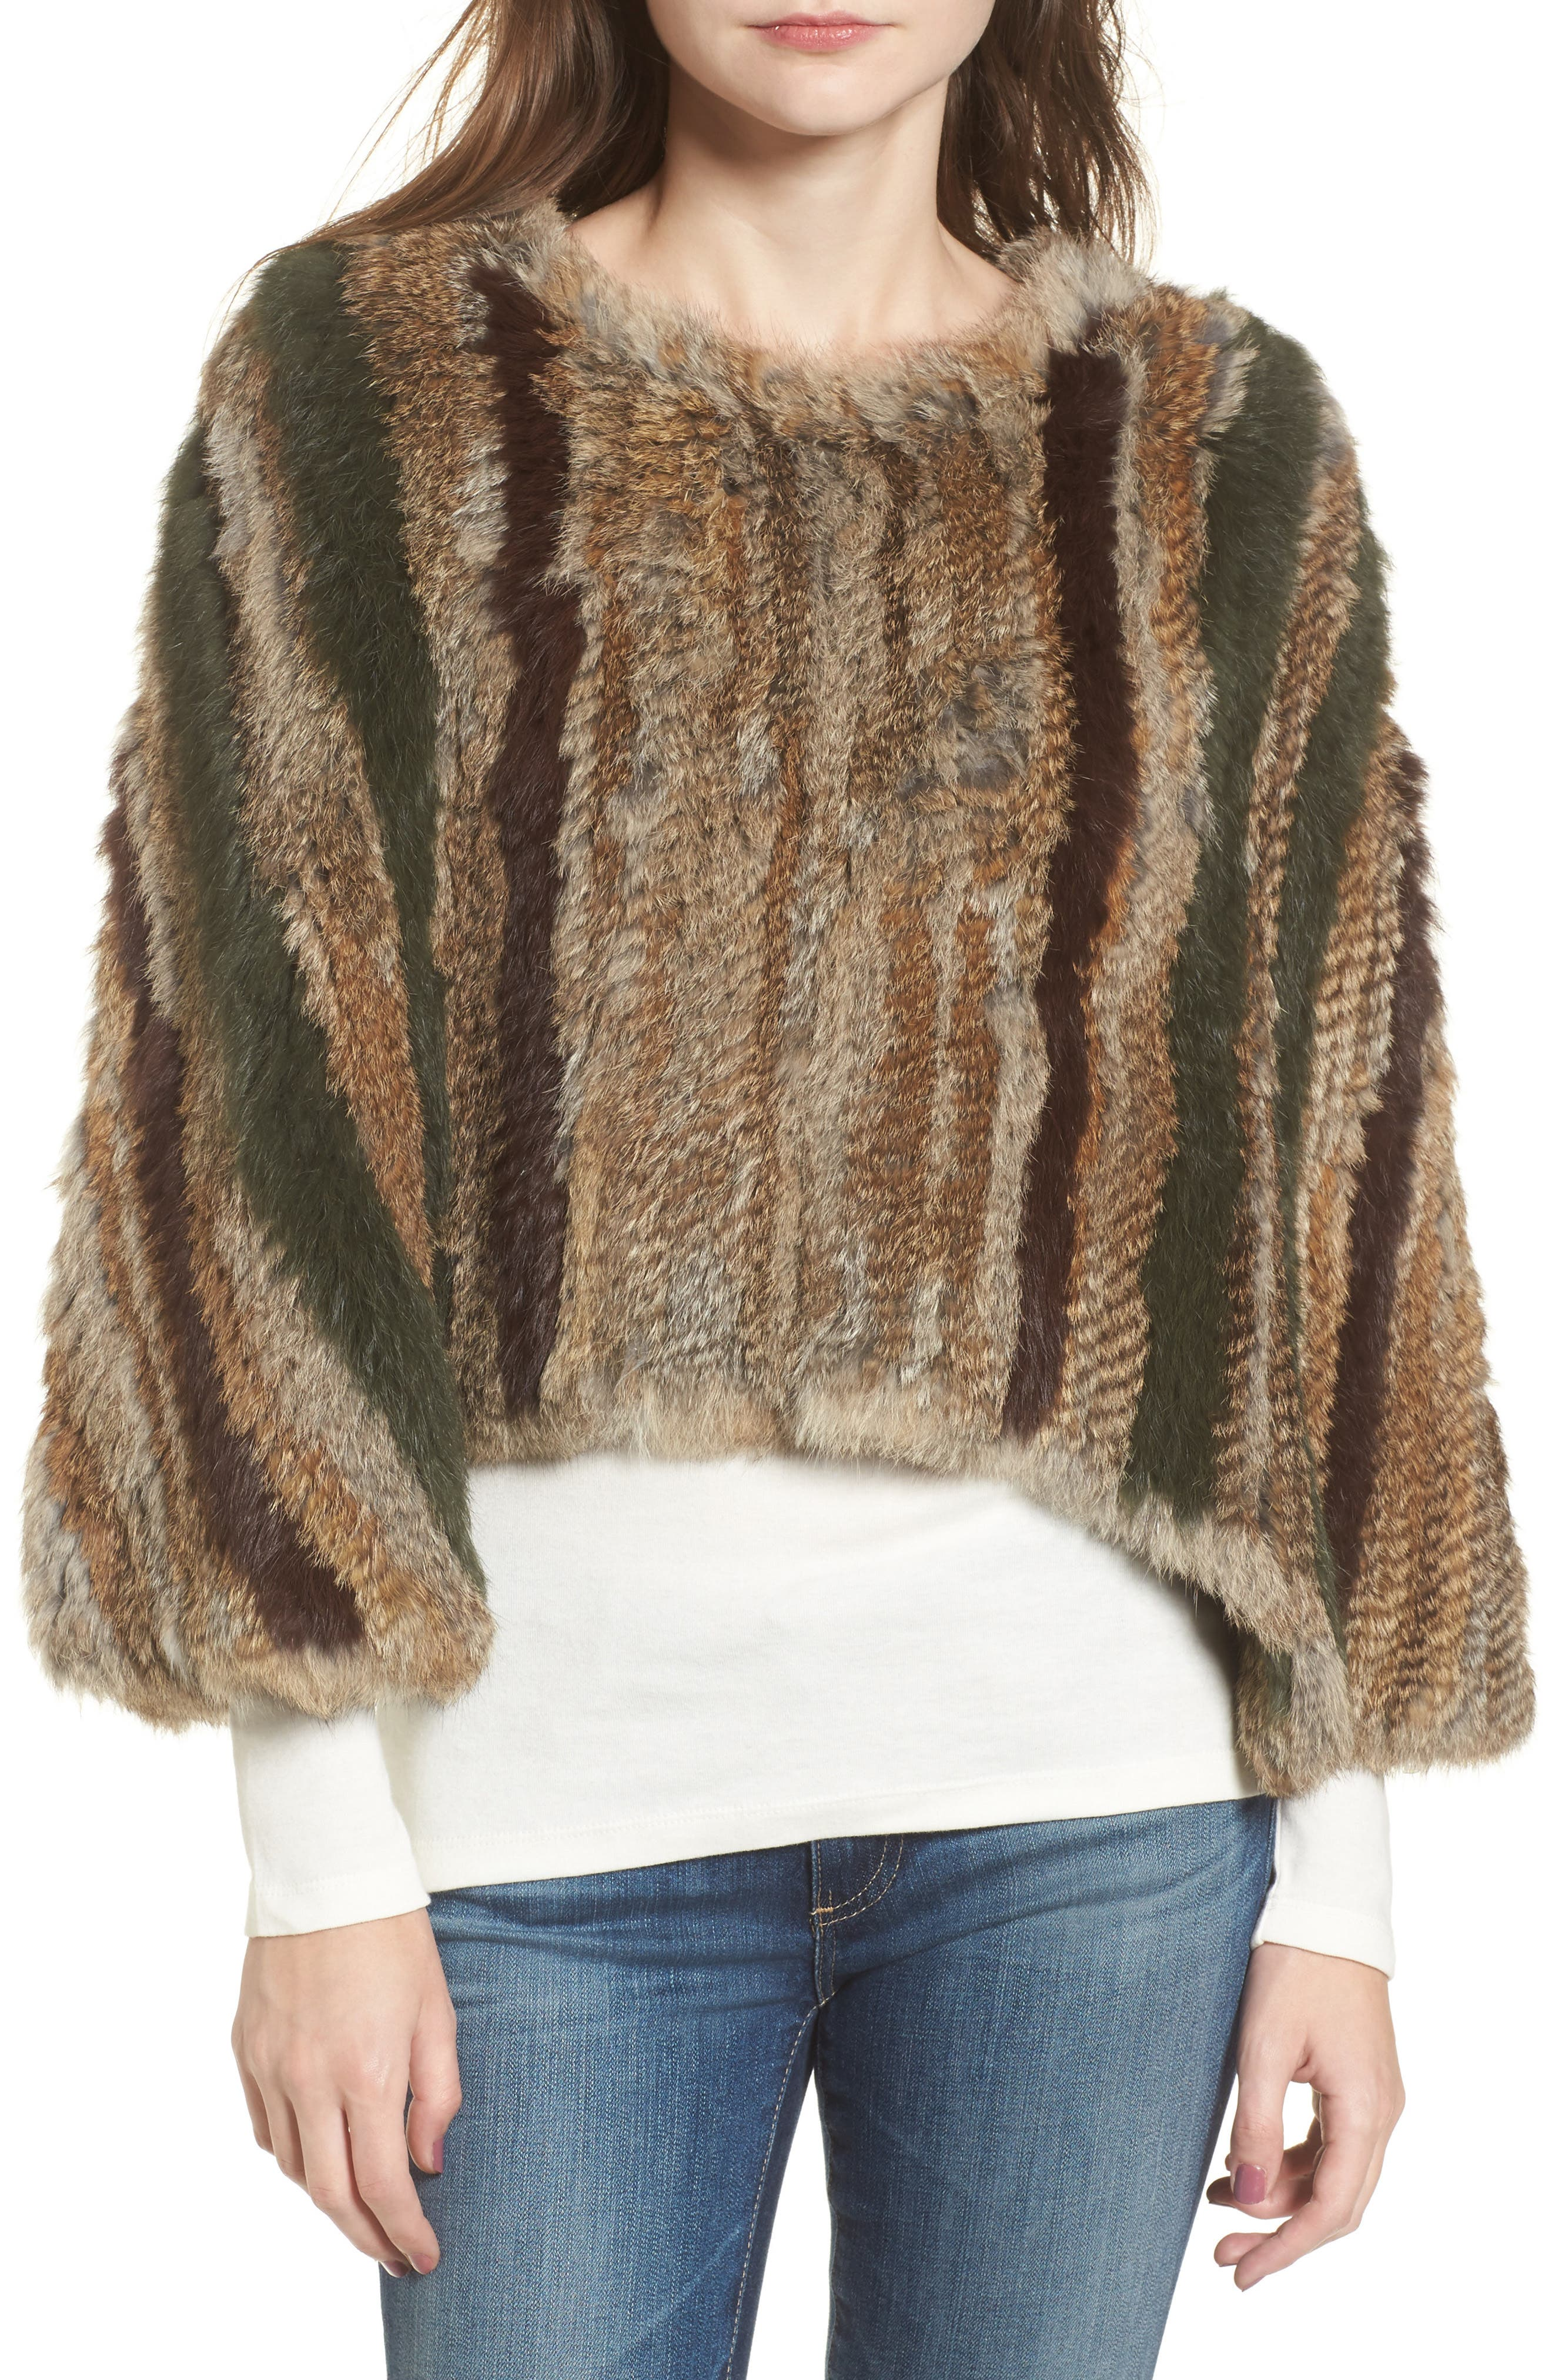 BNCI Nomad Genuine Rabbit Fur Pullover,                             Main thumbnail 1, color,                             Camel